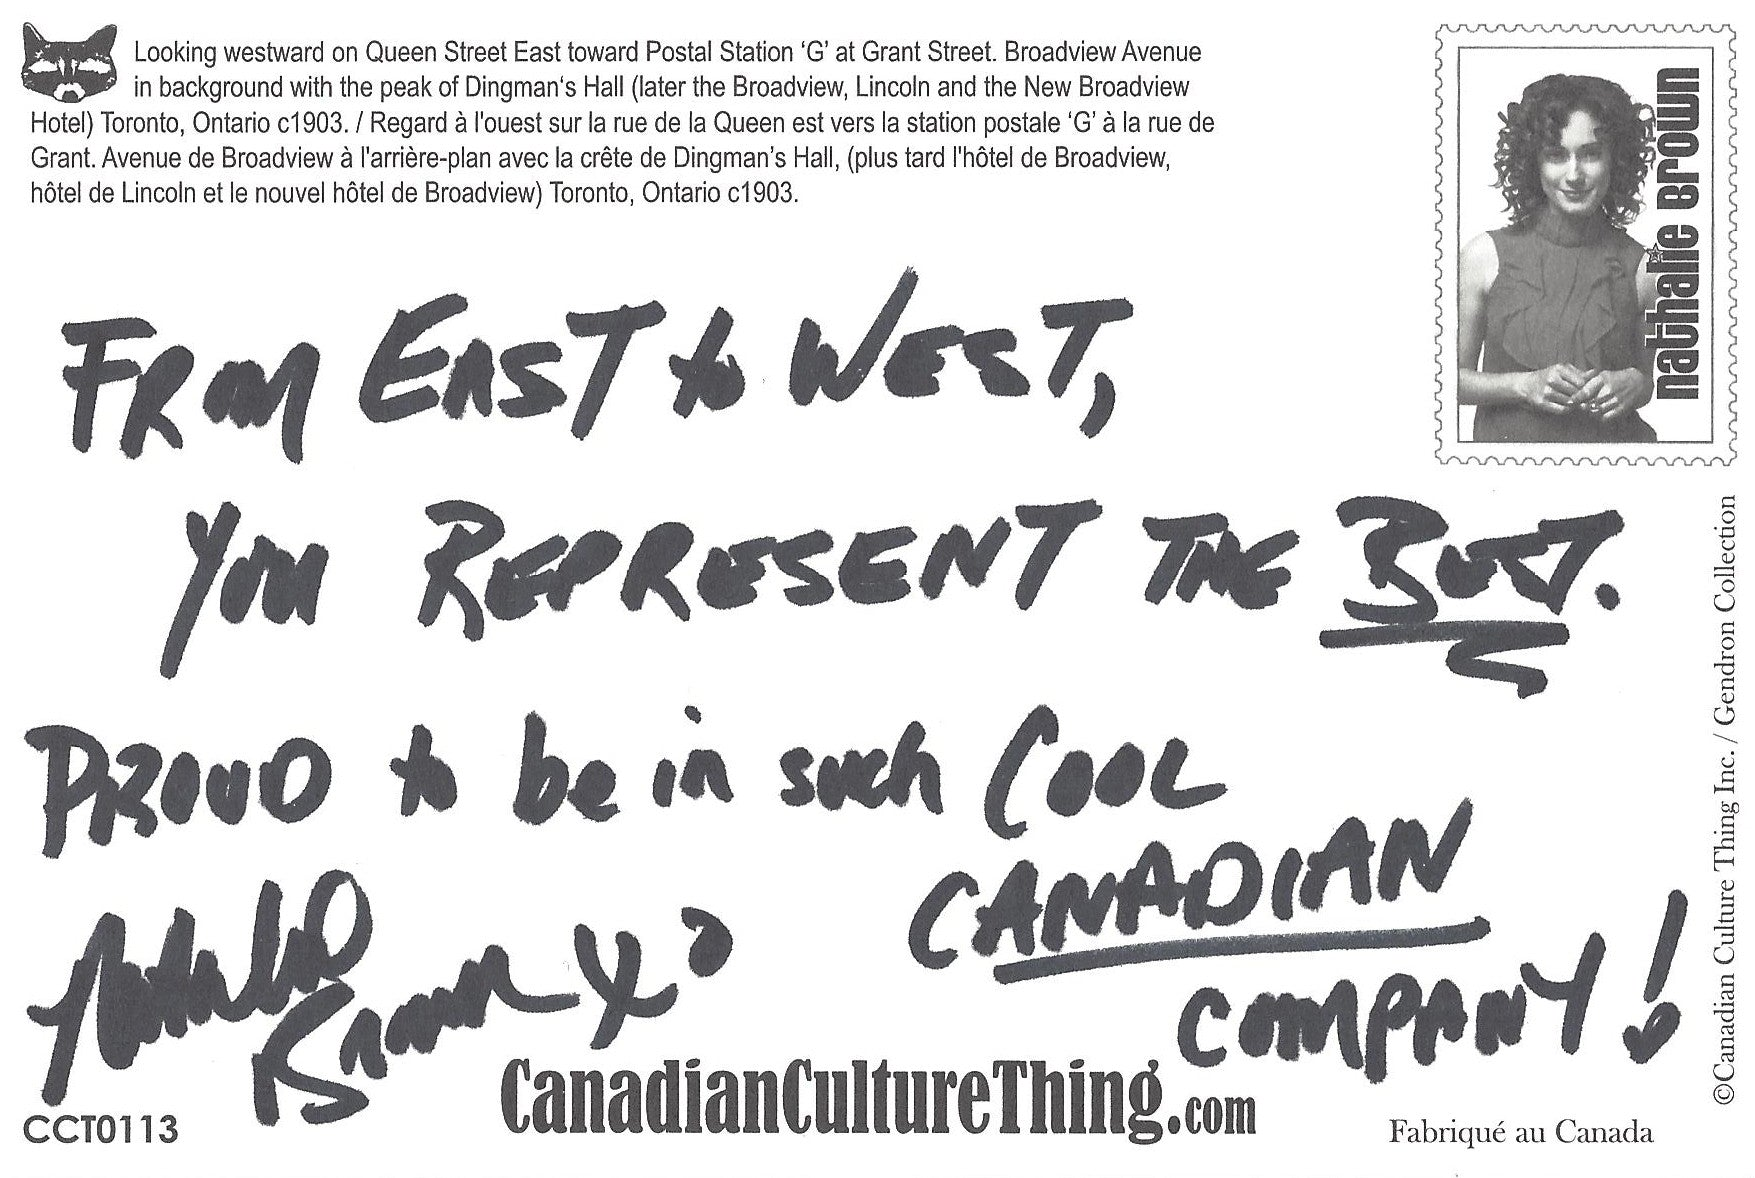 Canadian Culture Thing postcard CCT0113